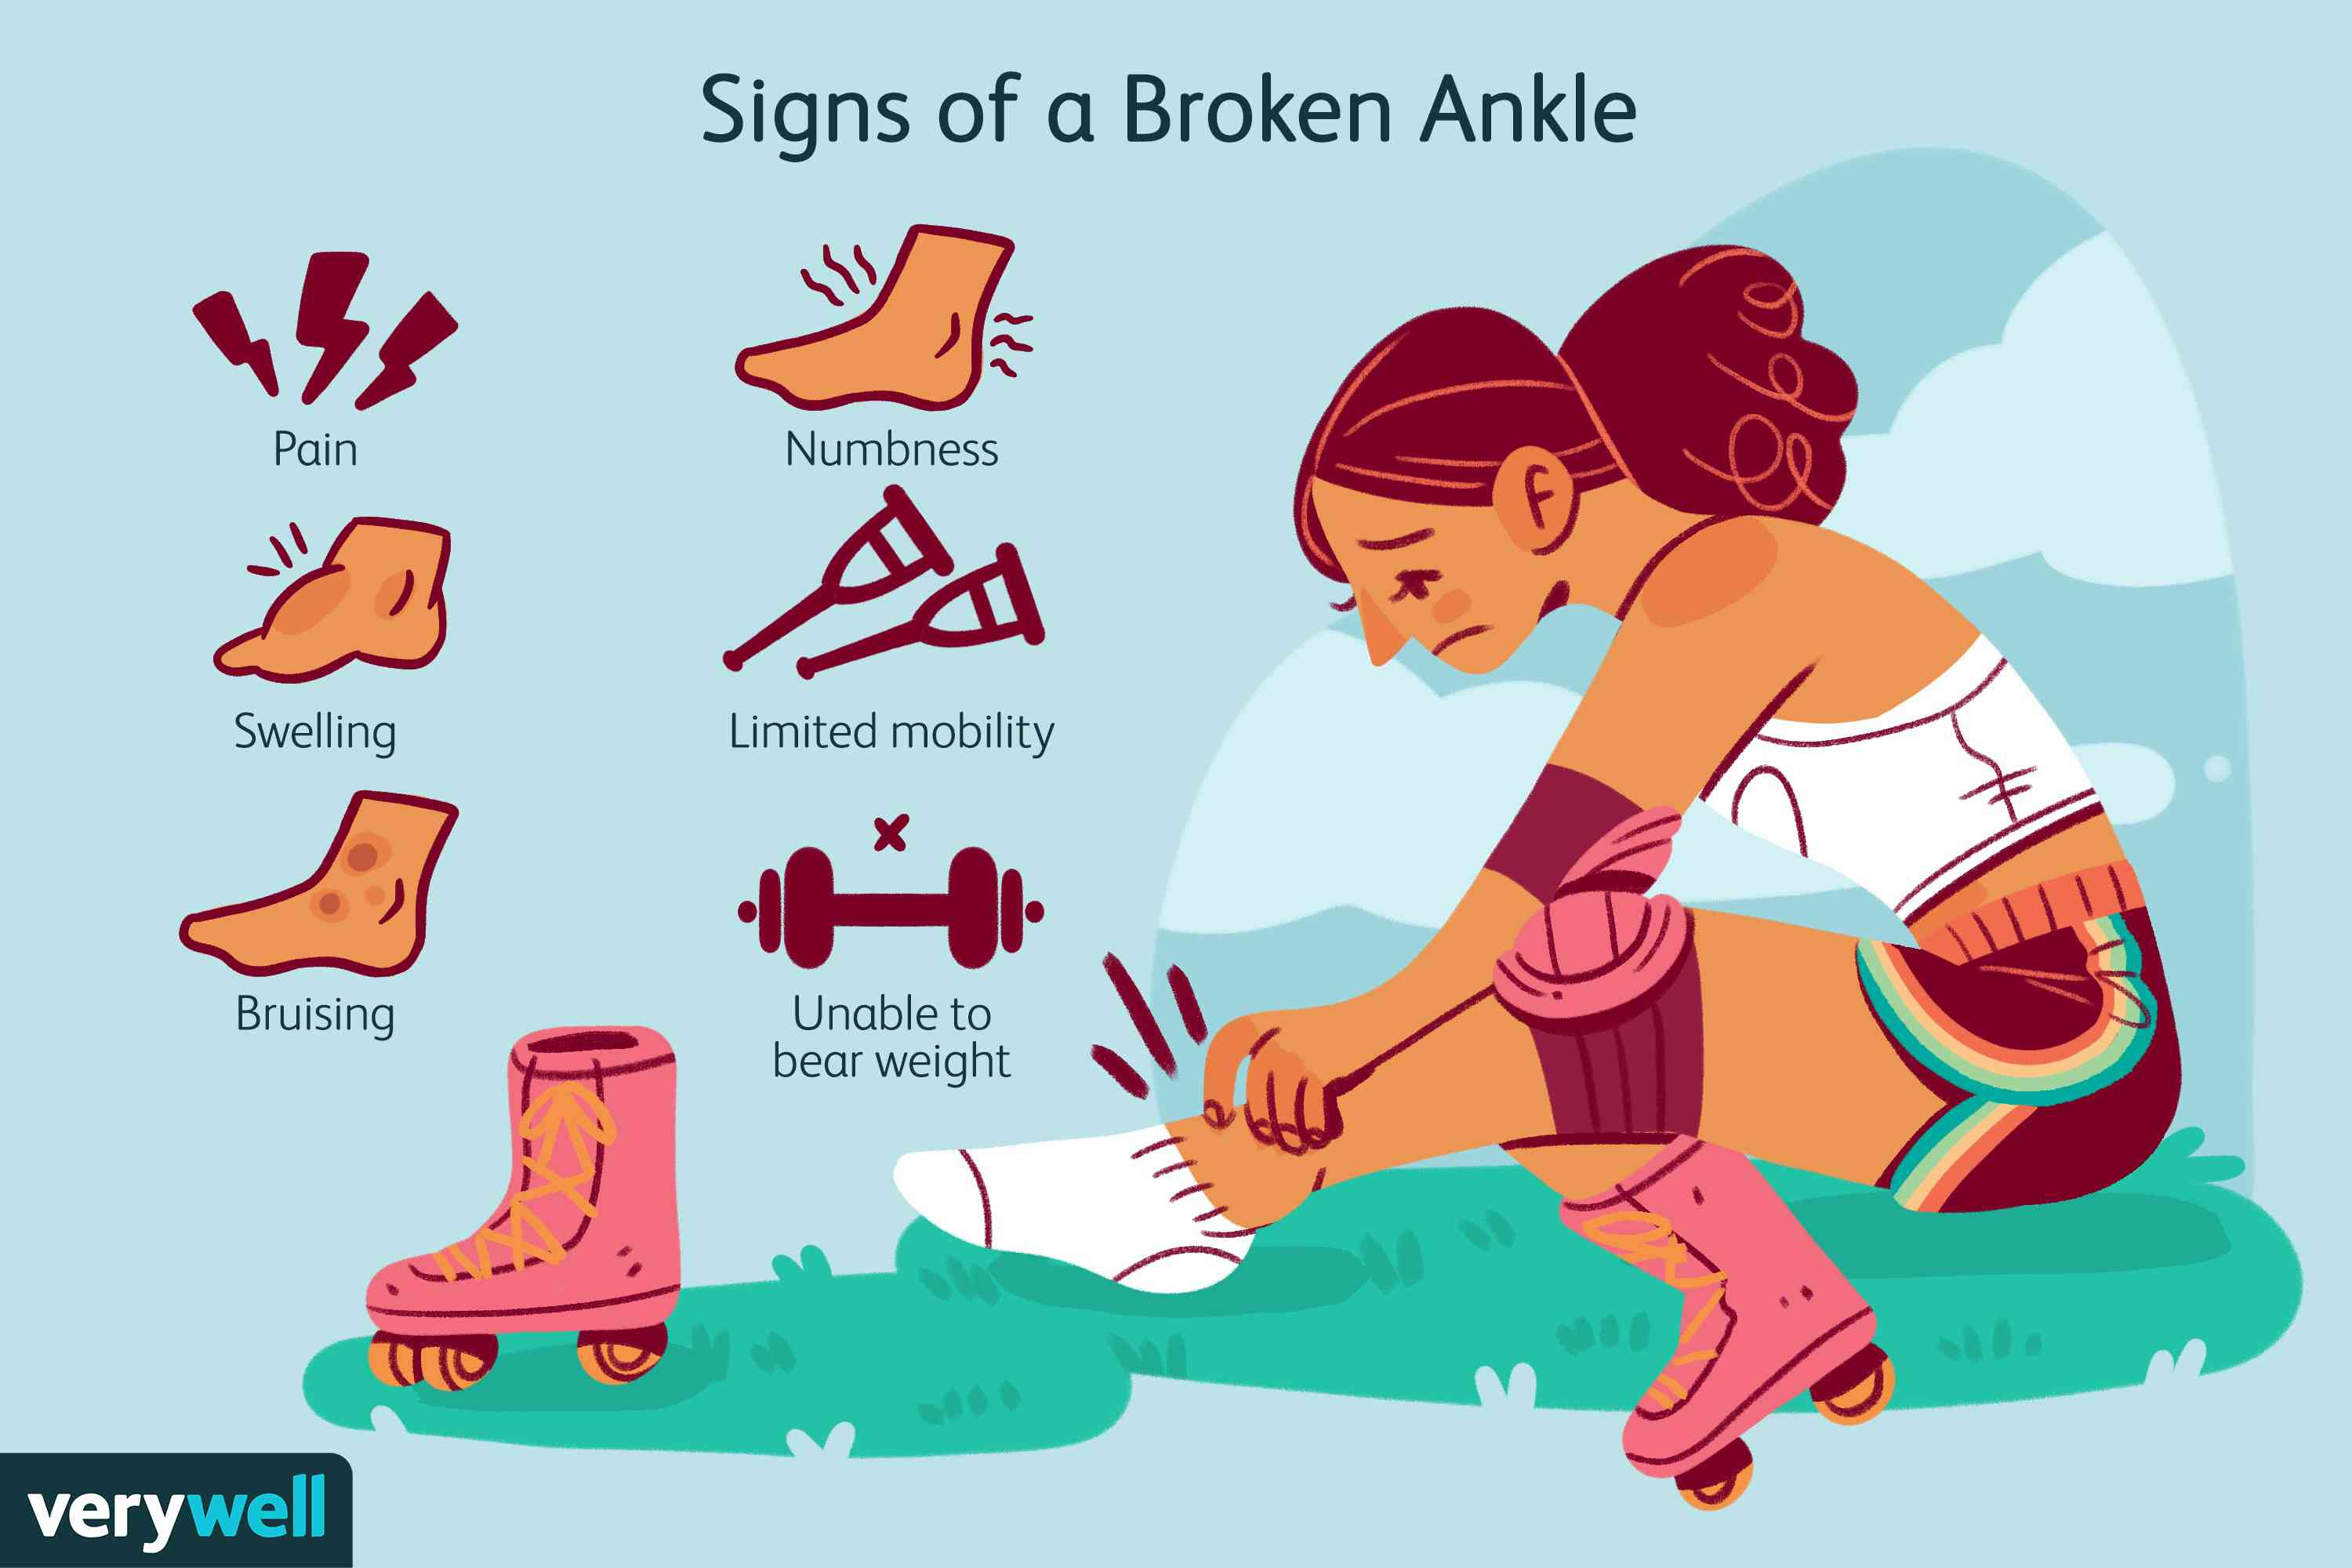 Signs of a Broken Ankle